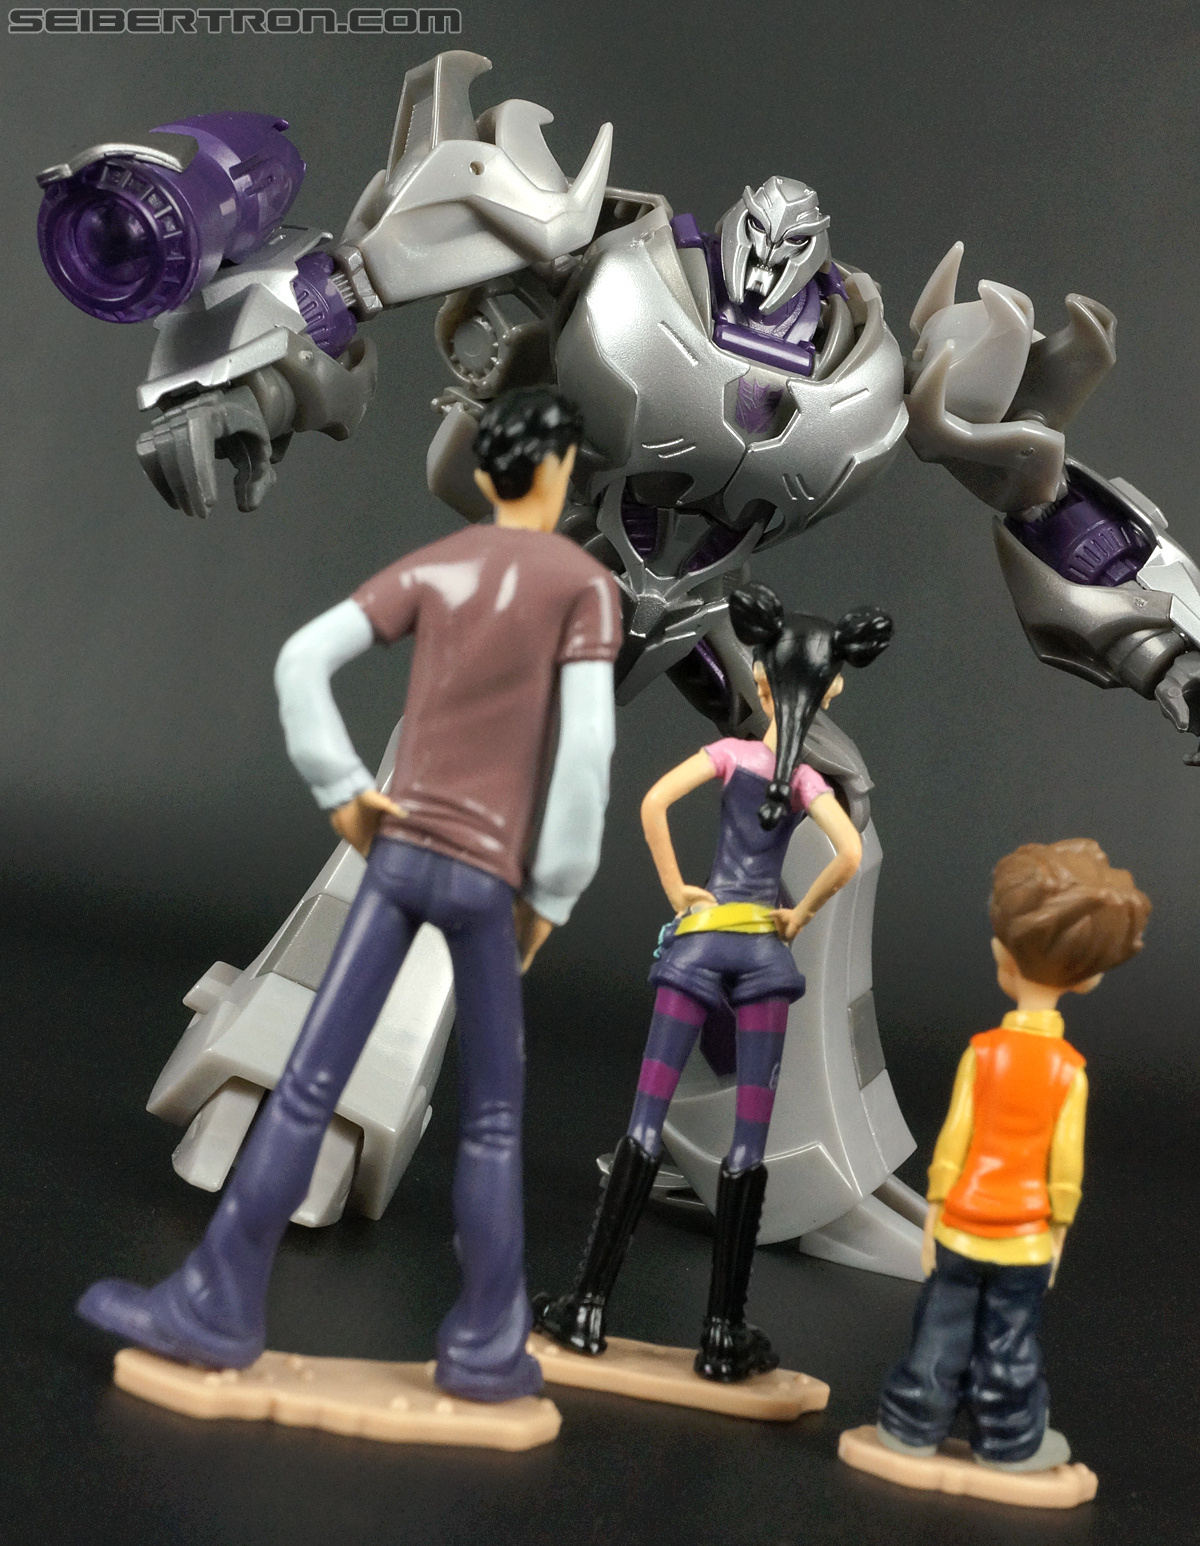 Transformers Prime: First Edition Jack Darby (Image #57 of 66)